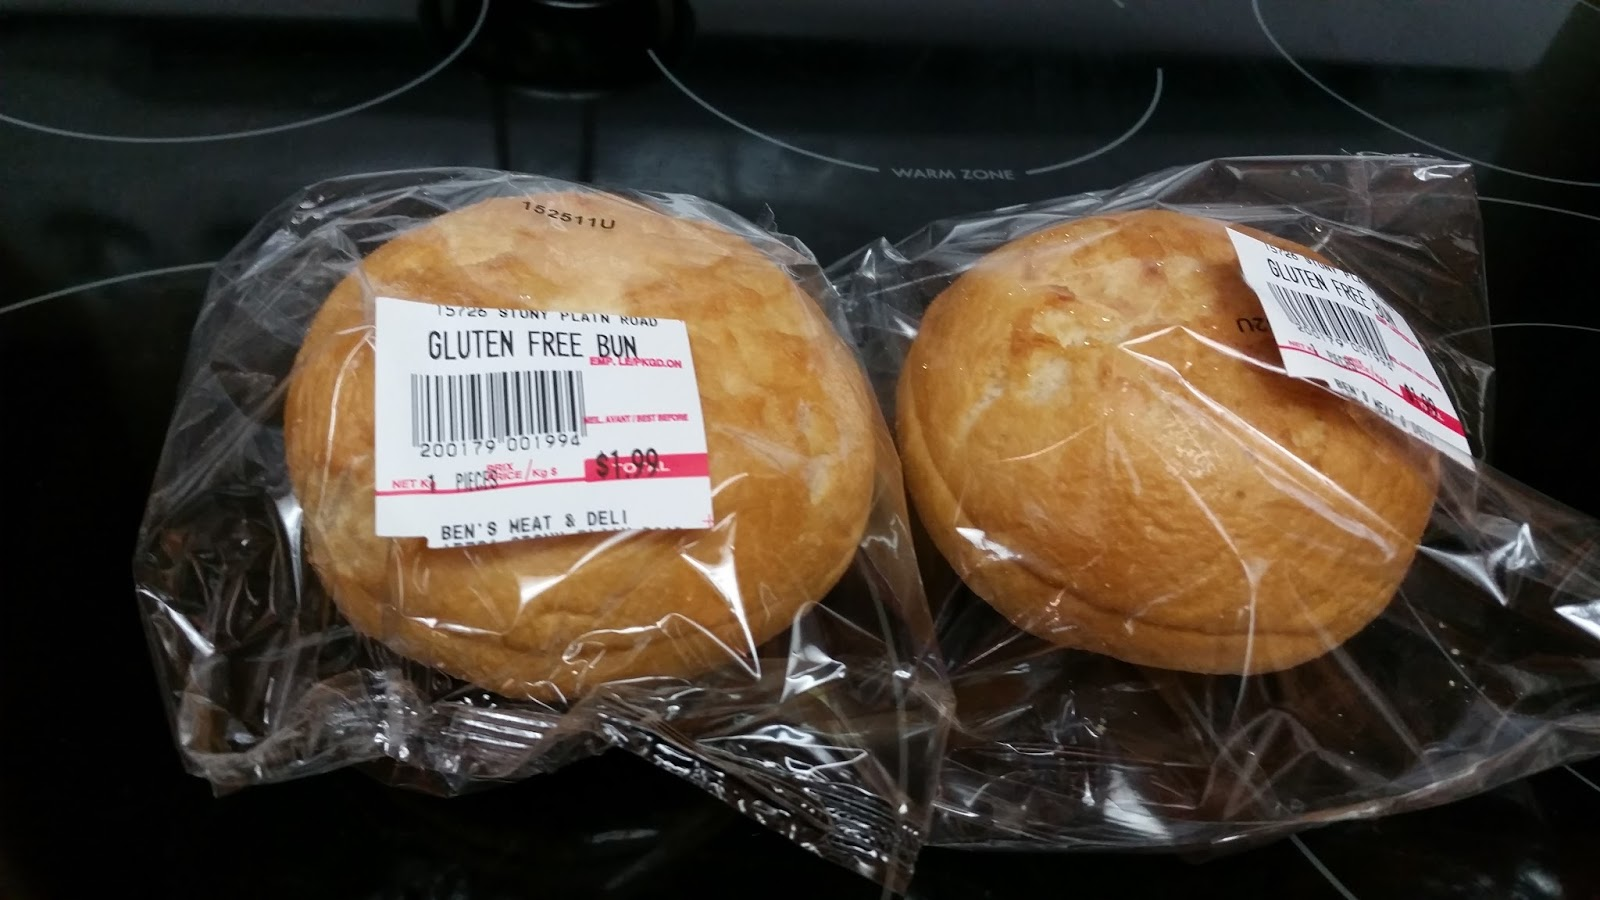 Udi's Commercial Buns on sale for everyone